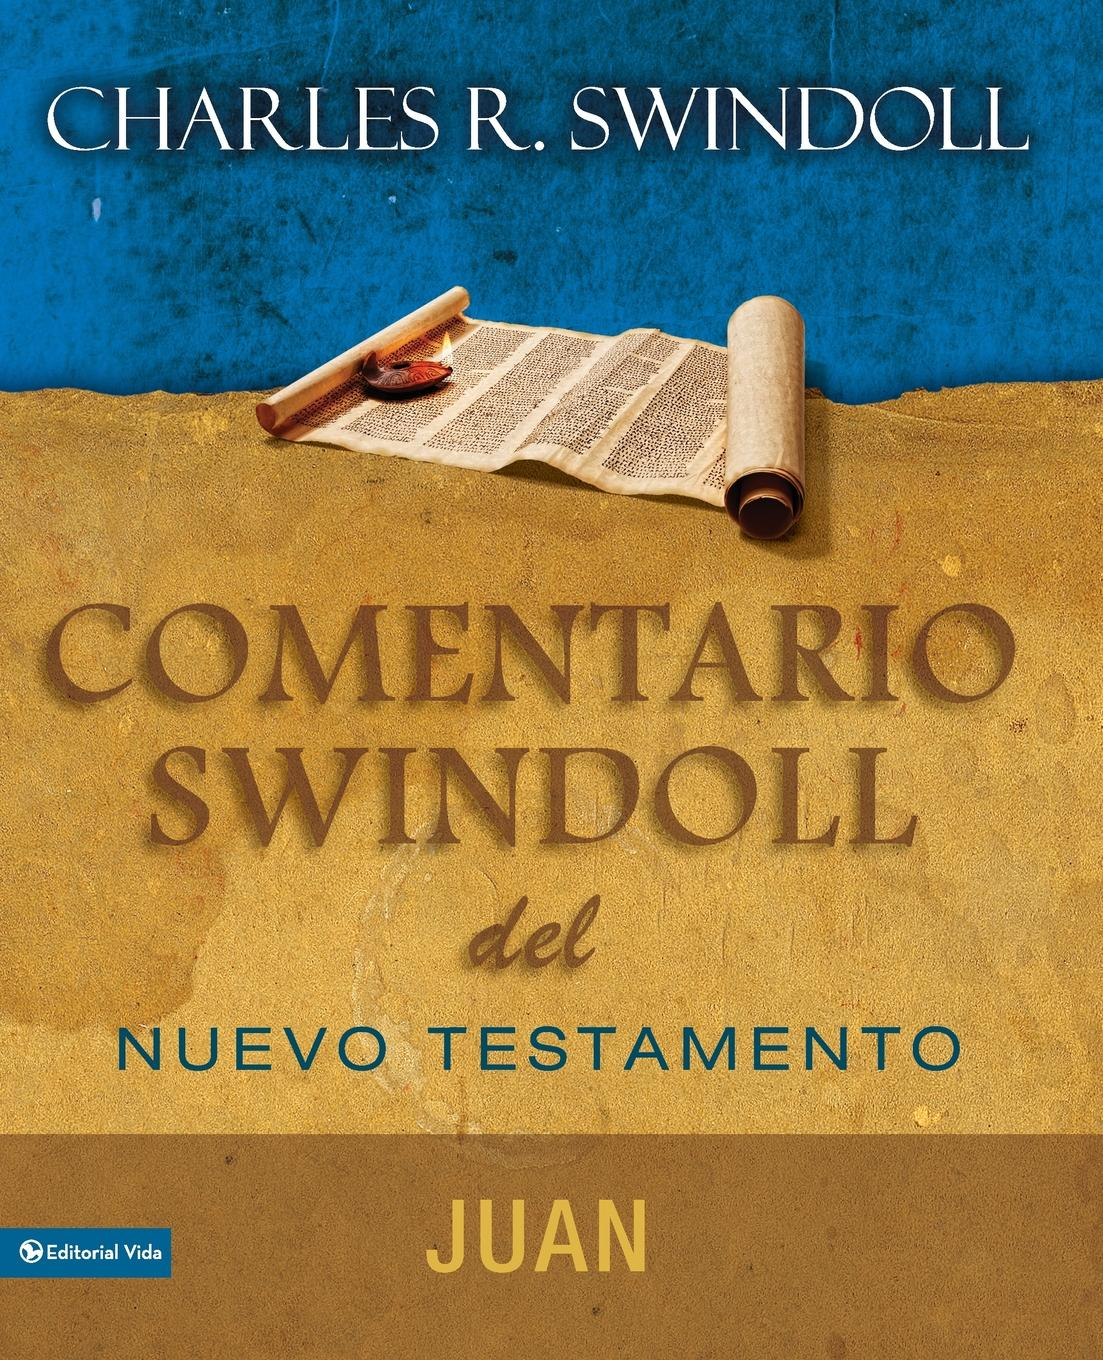 Charles R. Swindoll Comentario Swindoll del Nuevo Testamento. Juan yuxi for lenovo toshiba samsung dell asus sony tongfang acer new commonly laptop dc power jack connector 40 models 80 pcs